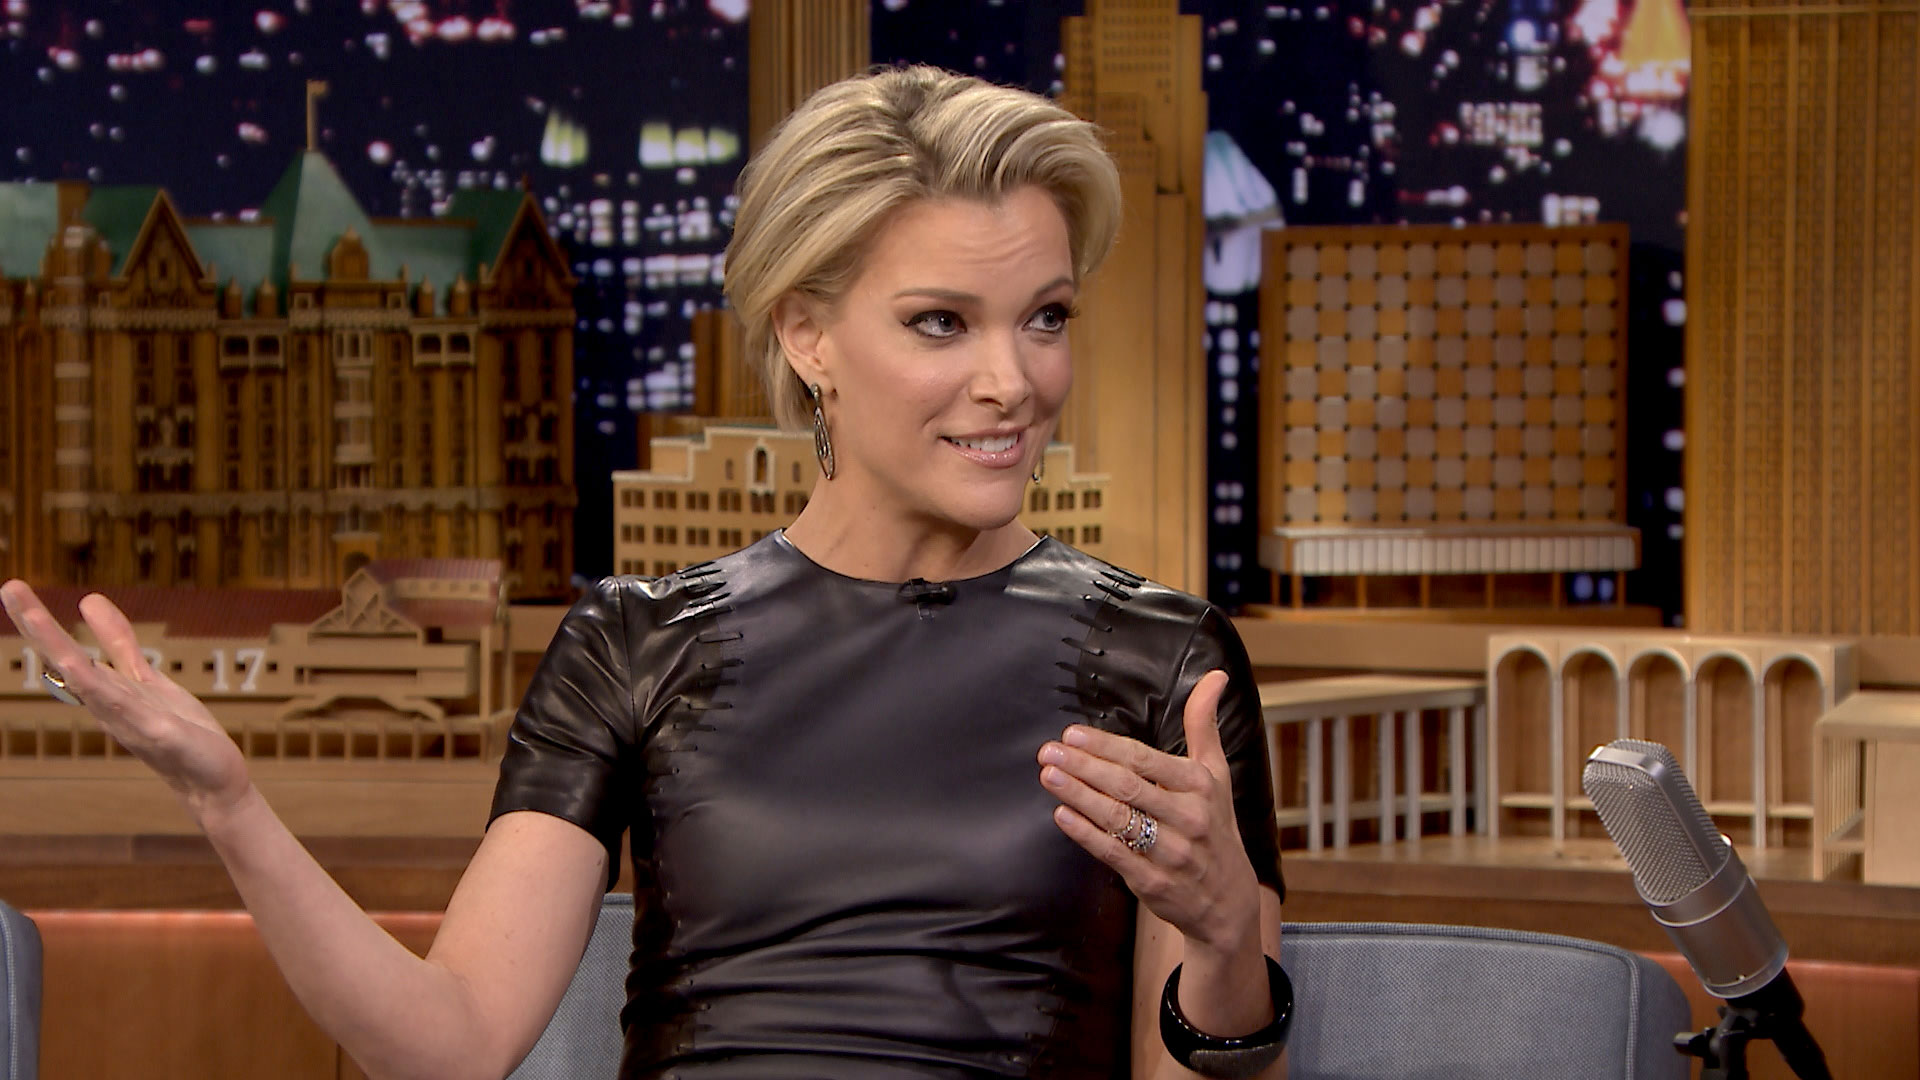 The Daily Show wont let Megyn Kelly forget about her Fox News past now that shes moved over to NBC News